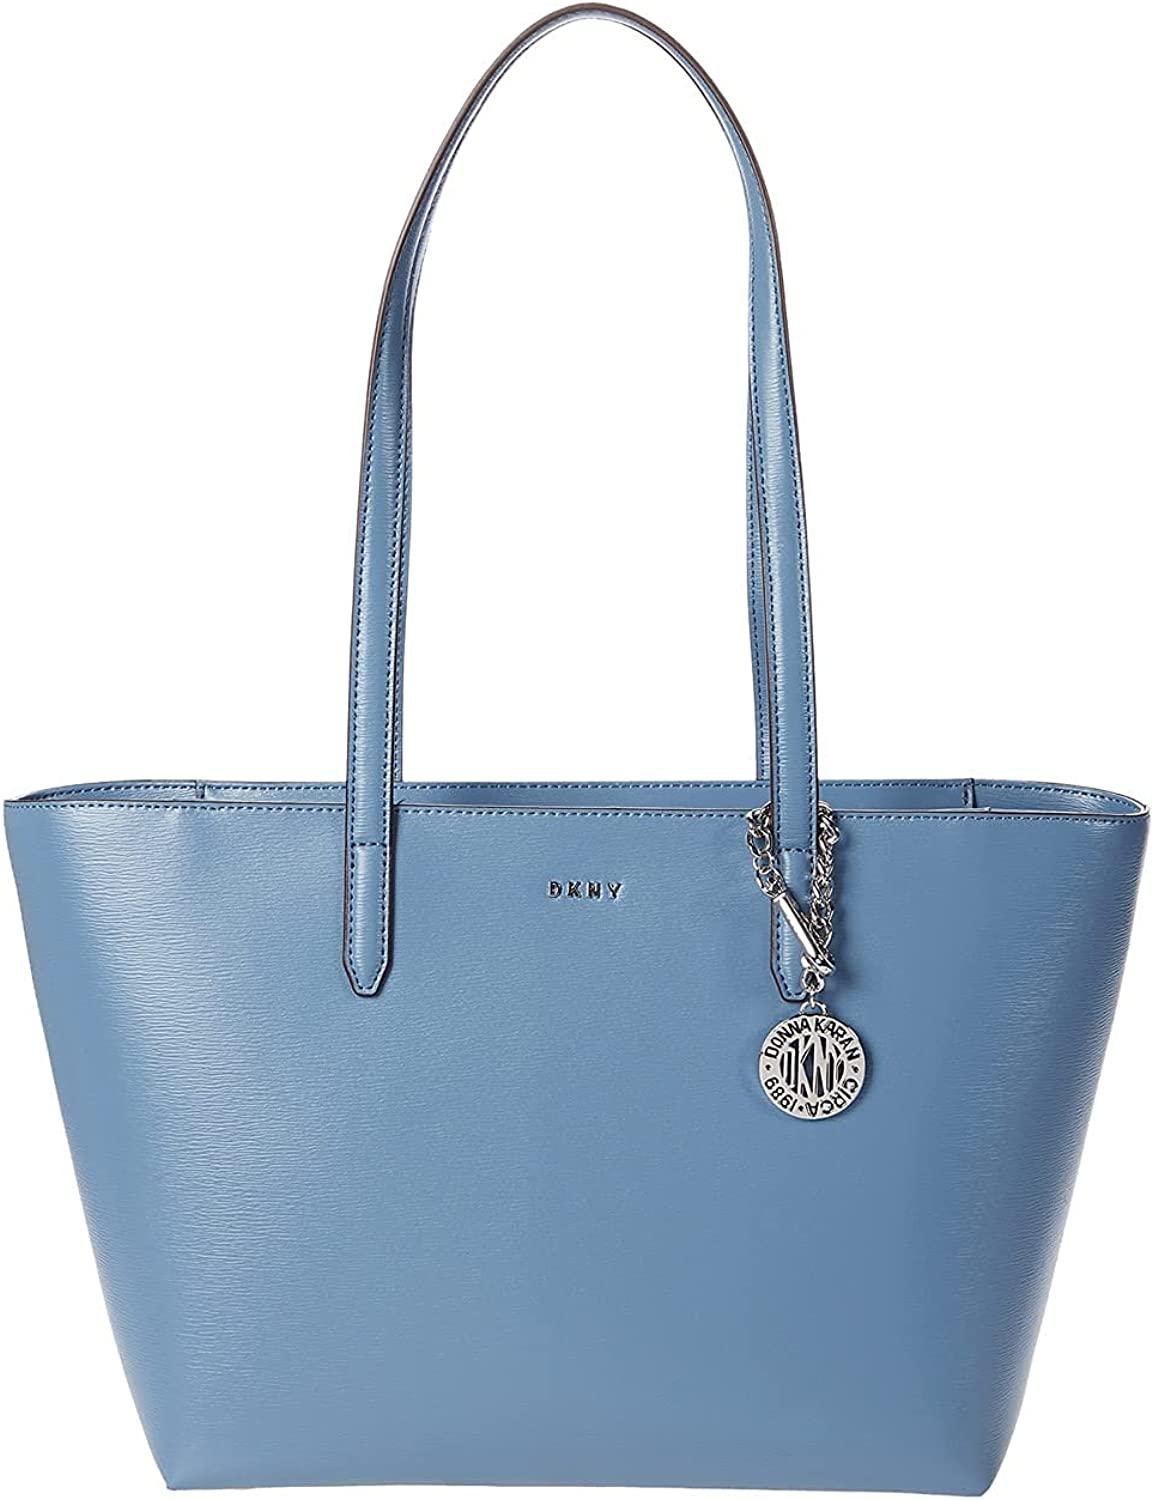 DKNY Special Campaign Bryant Medium store Tote